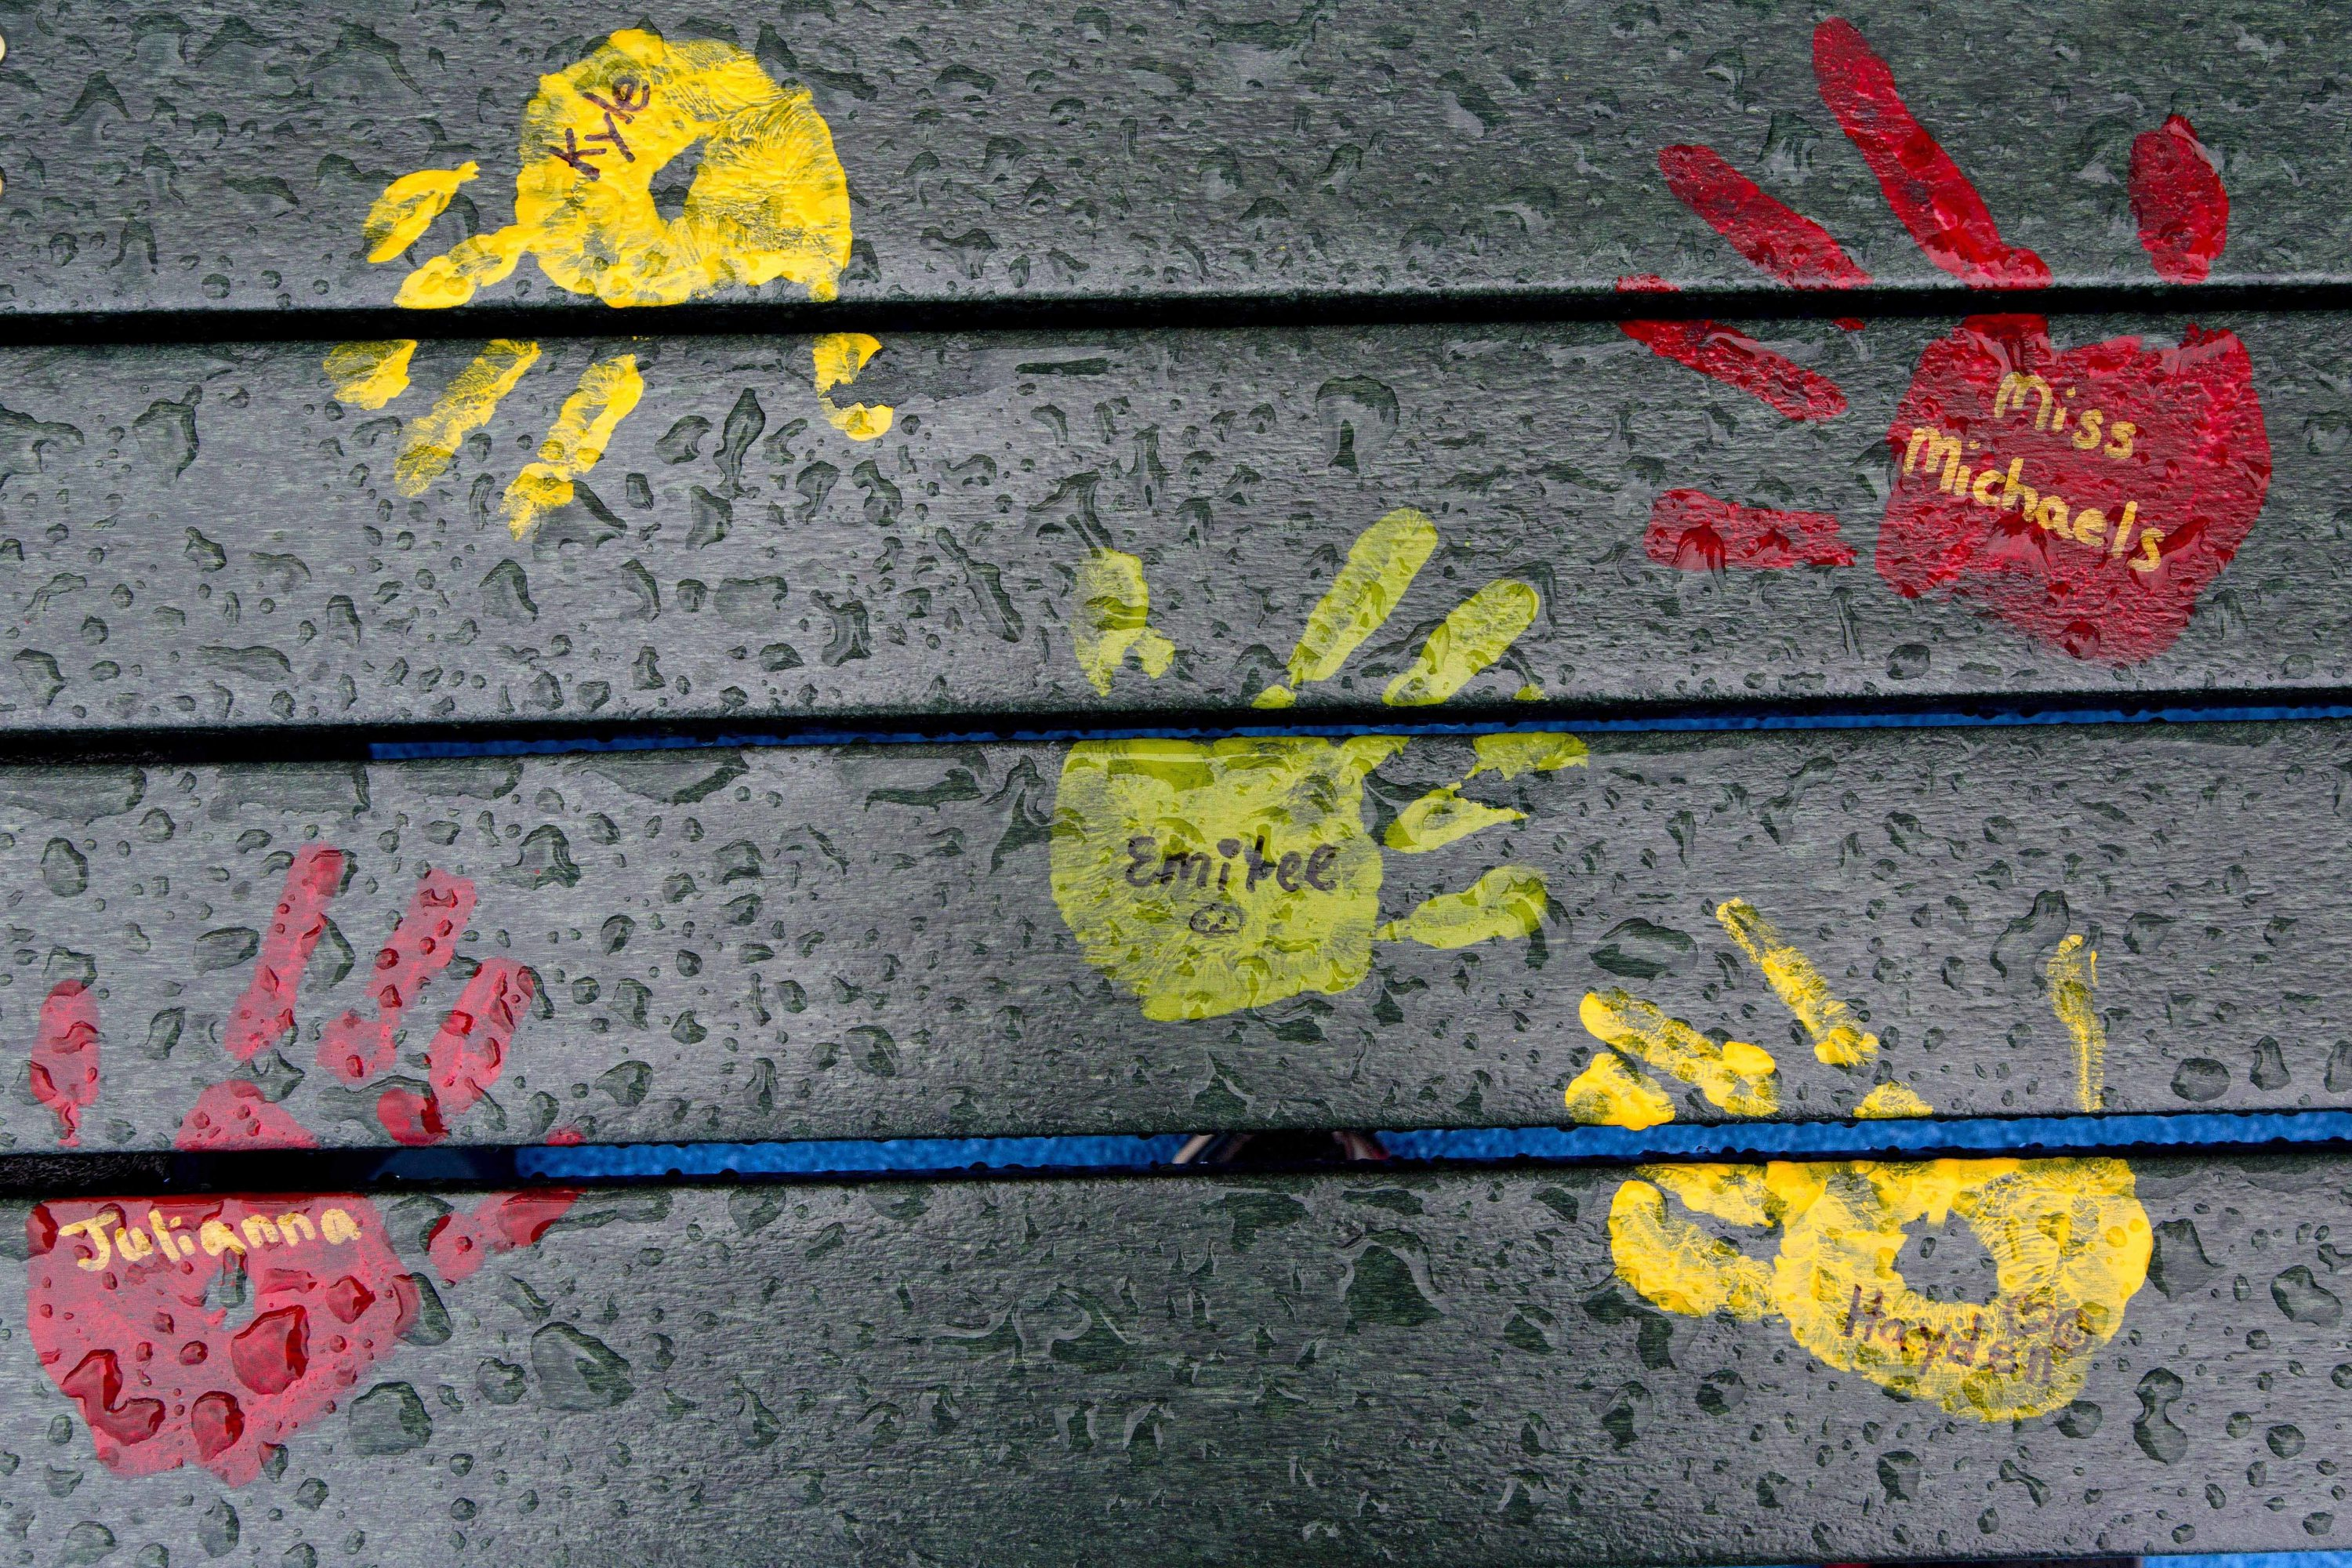 In this July 29, 2016 file photo, painted hand prints with names of teachers and students are on a playground bench at the new Sandy Hook Elementary School in Newtown, Conn. Students attended the first day of classes there on Monday, Aug. 29, 2016. The new building replaced the one that was demolished where 20 first graders and six educators were shot and killed in December 2012. The names on the bench are not those of people killed in the 2012 massacre at the school.